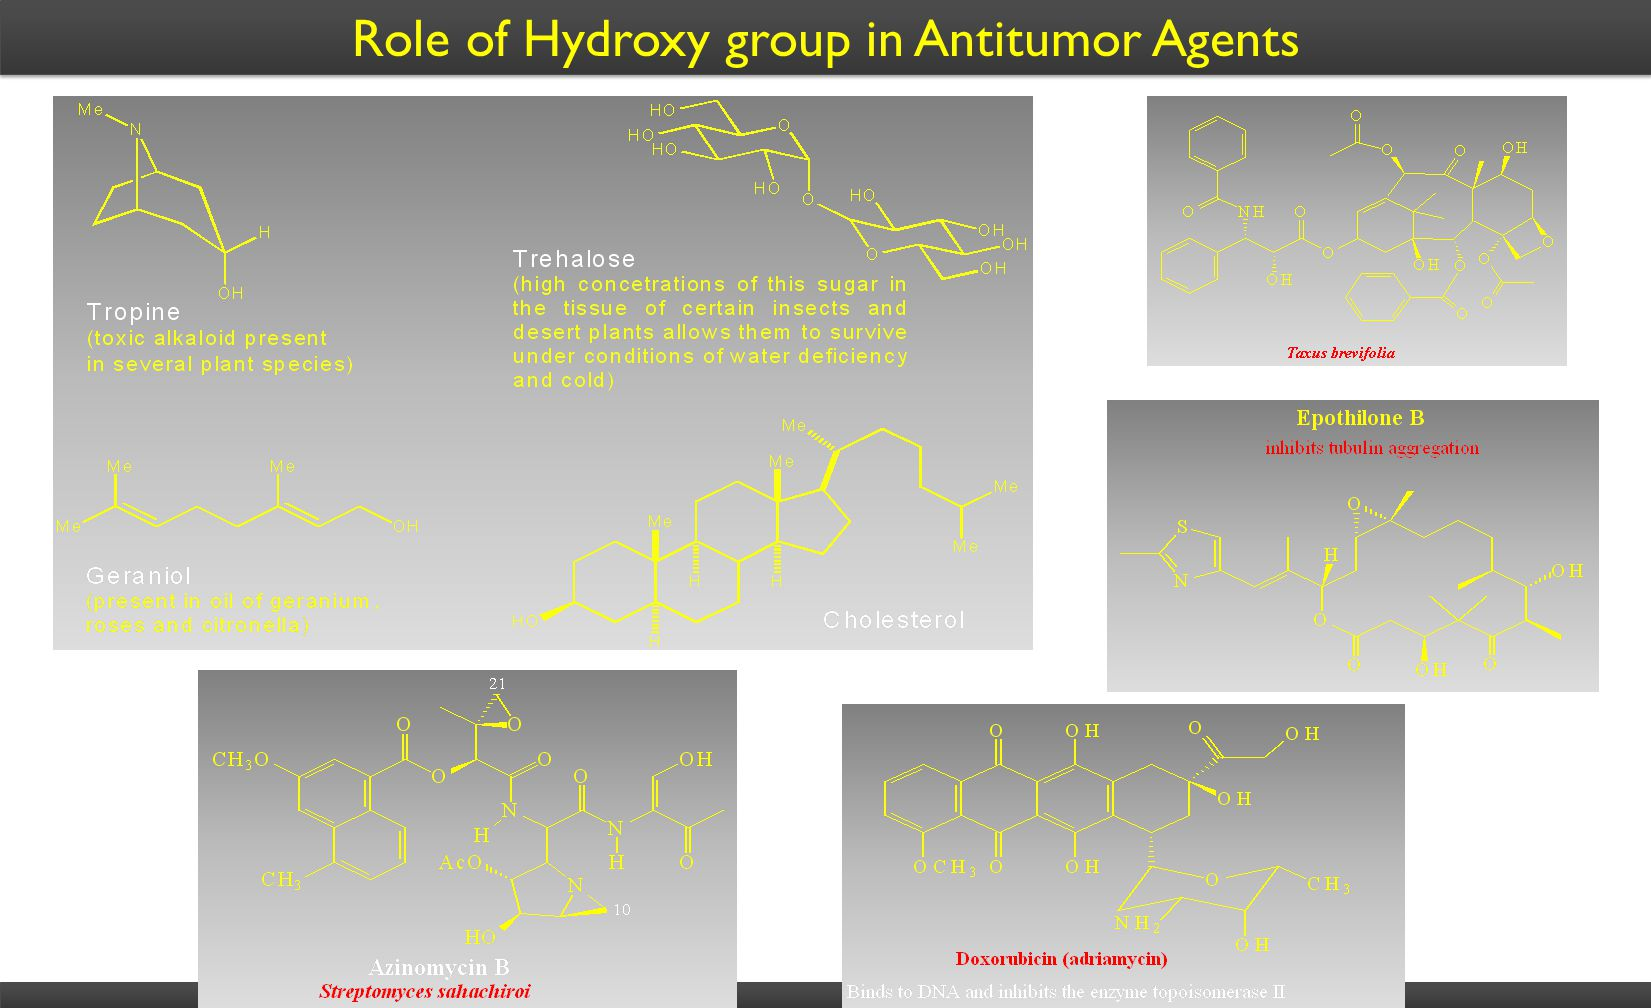 Role of Hydroxy group in Antitumor Agents